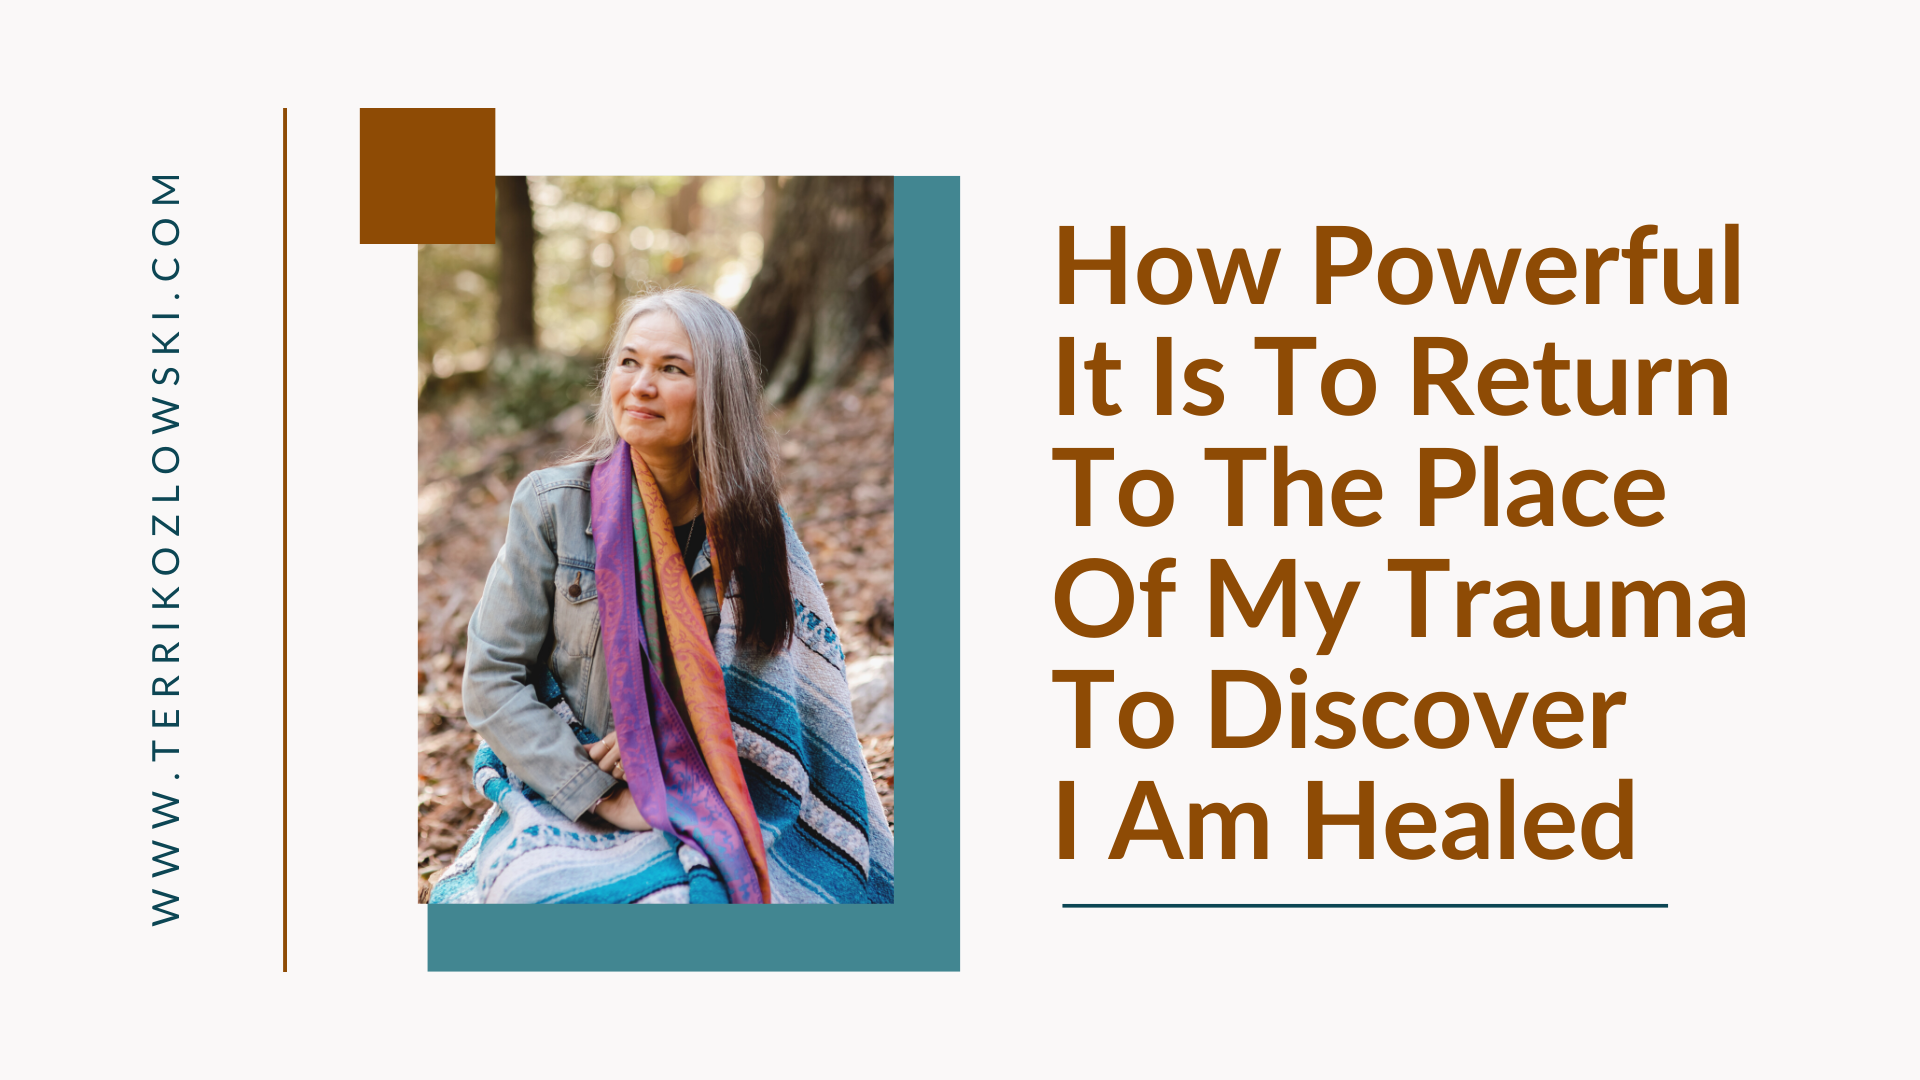 What question healed me